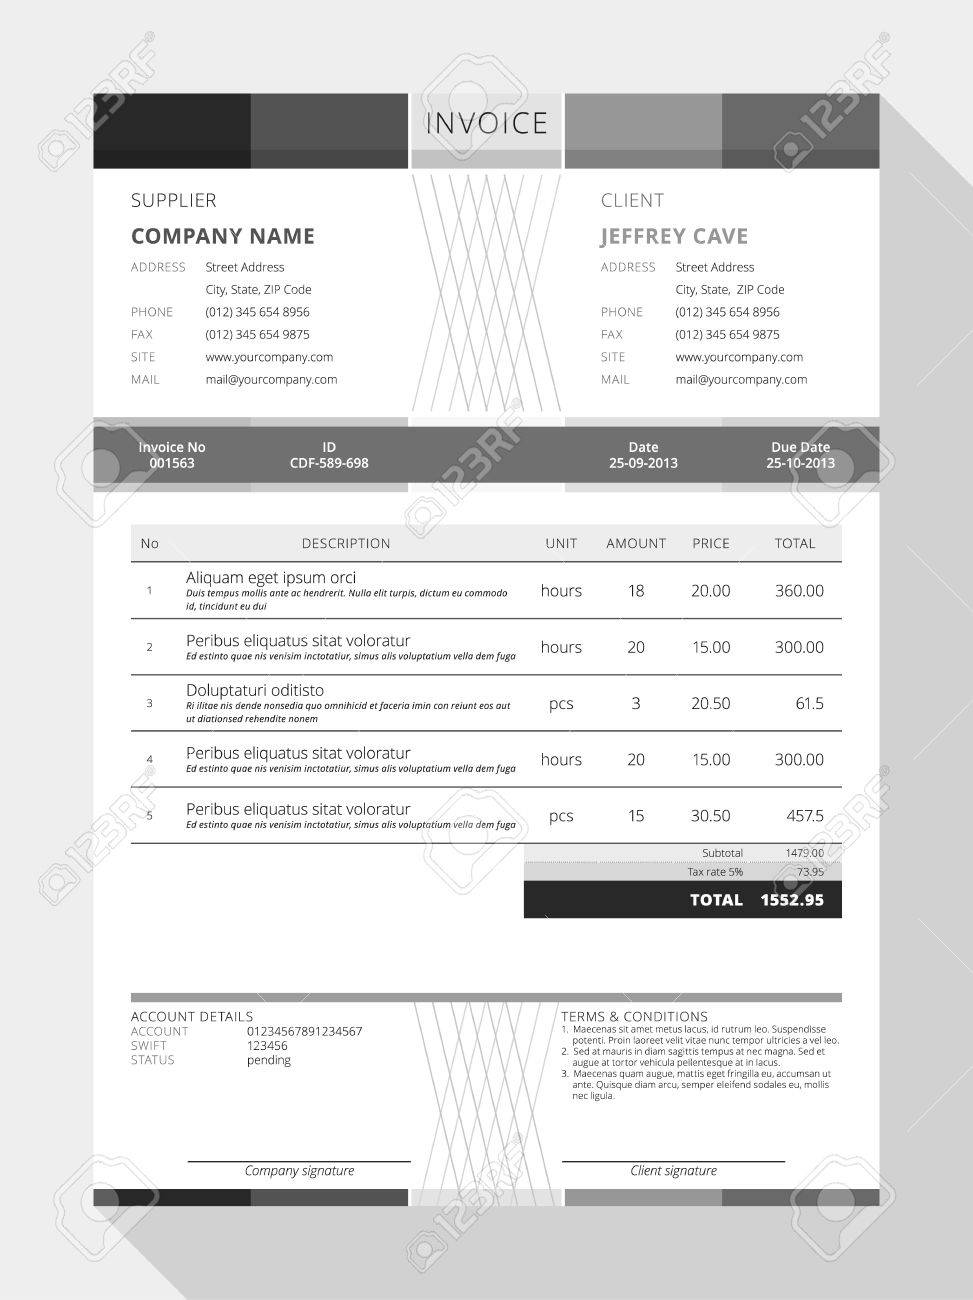 Hucareus  Nice Design An Invoice  Professional Graphic Design Invoice  With Exquisite Vector Customizable Invoice Form Template Design Vector   Design An Invoice With Charming Sample Of Commercial Invoice Also Services Rendered Invoice Template In Addition Definition Of Purchase Invoice And Receipts And Invoices As Well As How To Print Invoices Additionally Blank Invoice Template Free Pdf From Happytomco With Hucareus  Exquisite Design An Invoice  Professional Graphic Design Invoice  With Charming Vector Customizable Invoice Form Template Design Vector   Design An Invoice And Nice Sample Of Commercial Invoice Also Services Rendered Invoice Template In Addition Definition Of Purchase Invoice From Happytomco